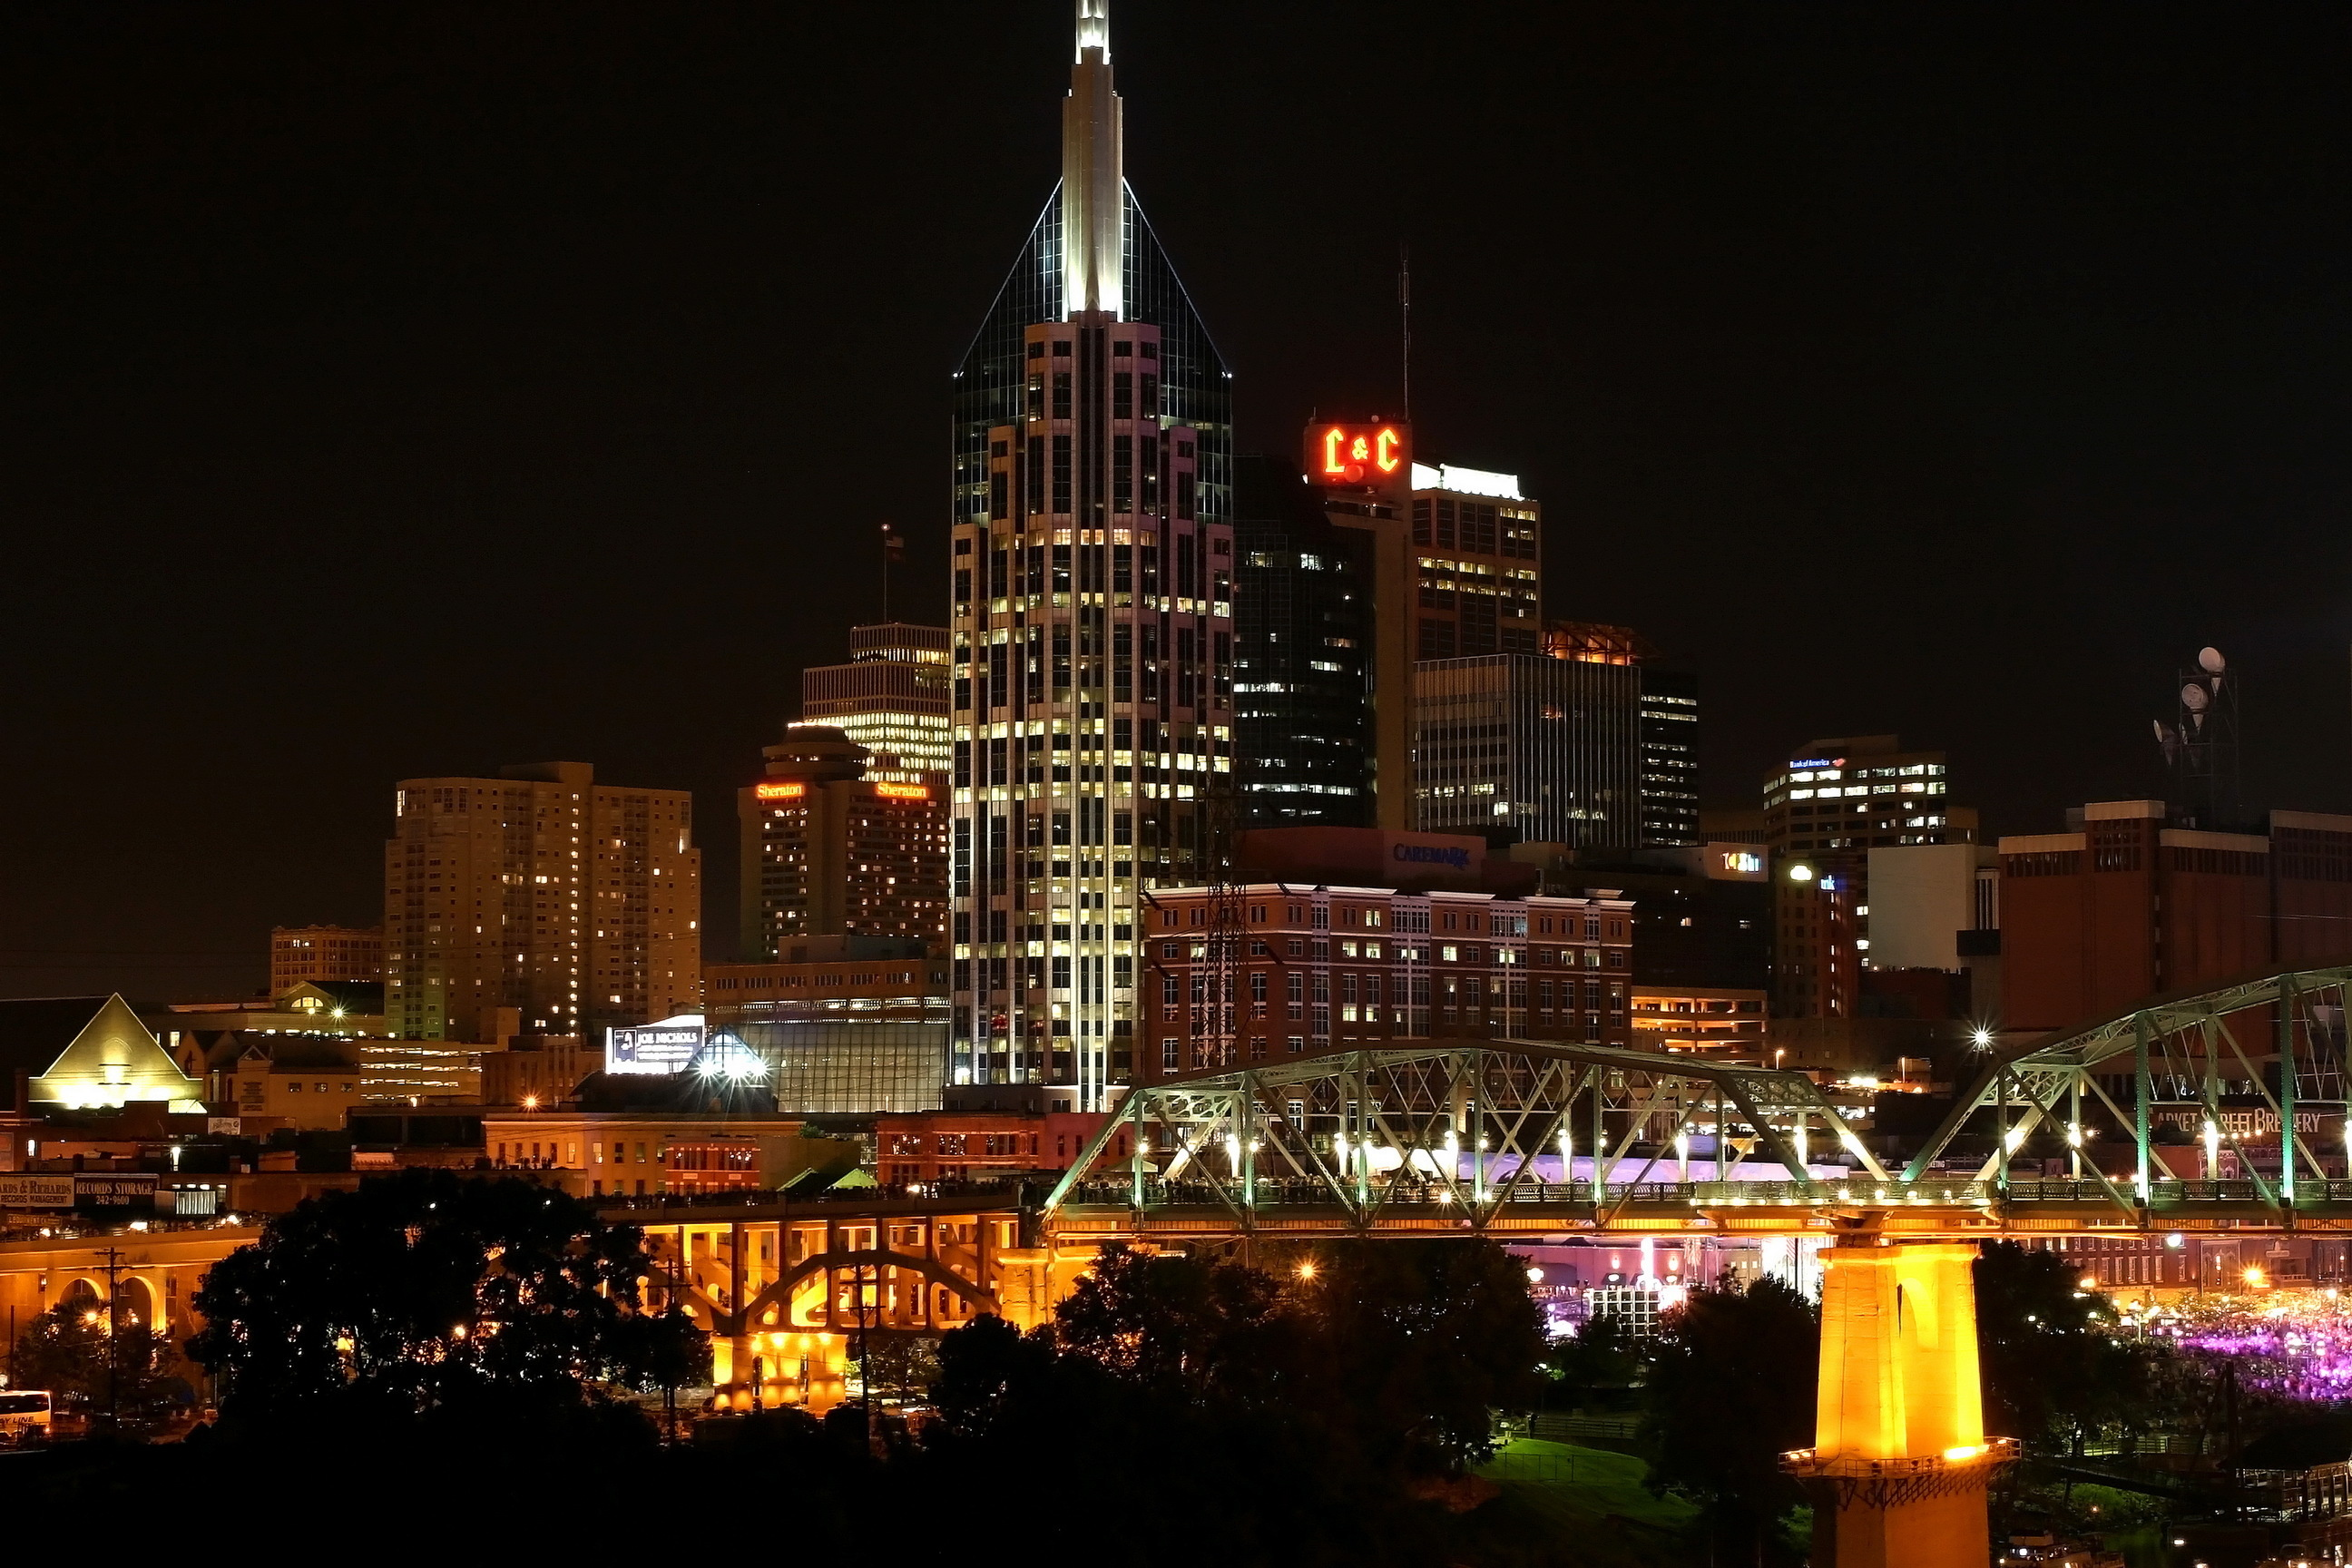 Nashville Full Hd Wallpaper And Background Image